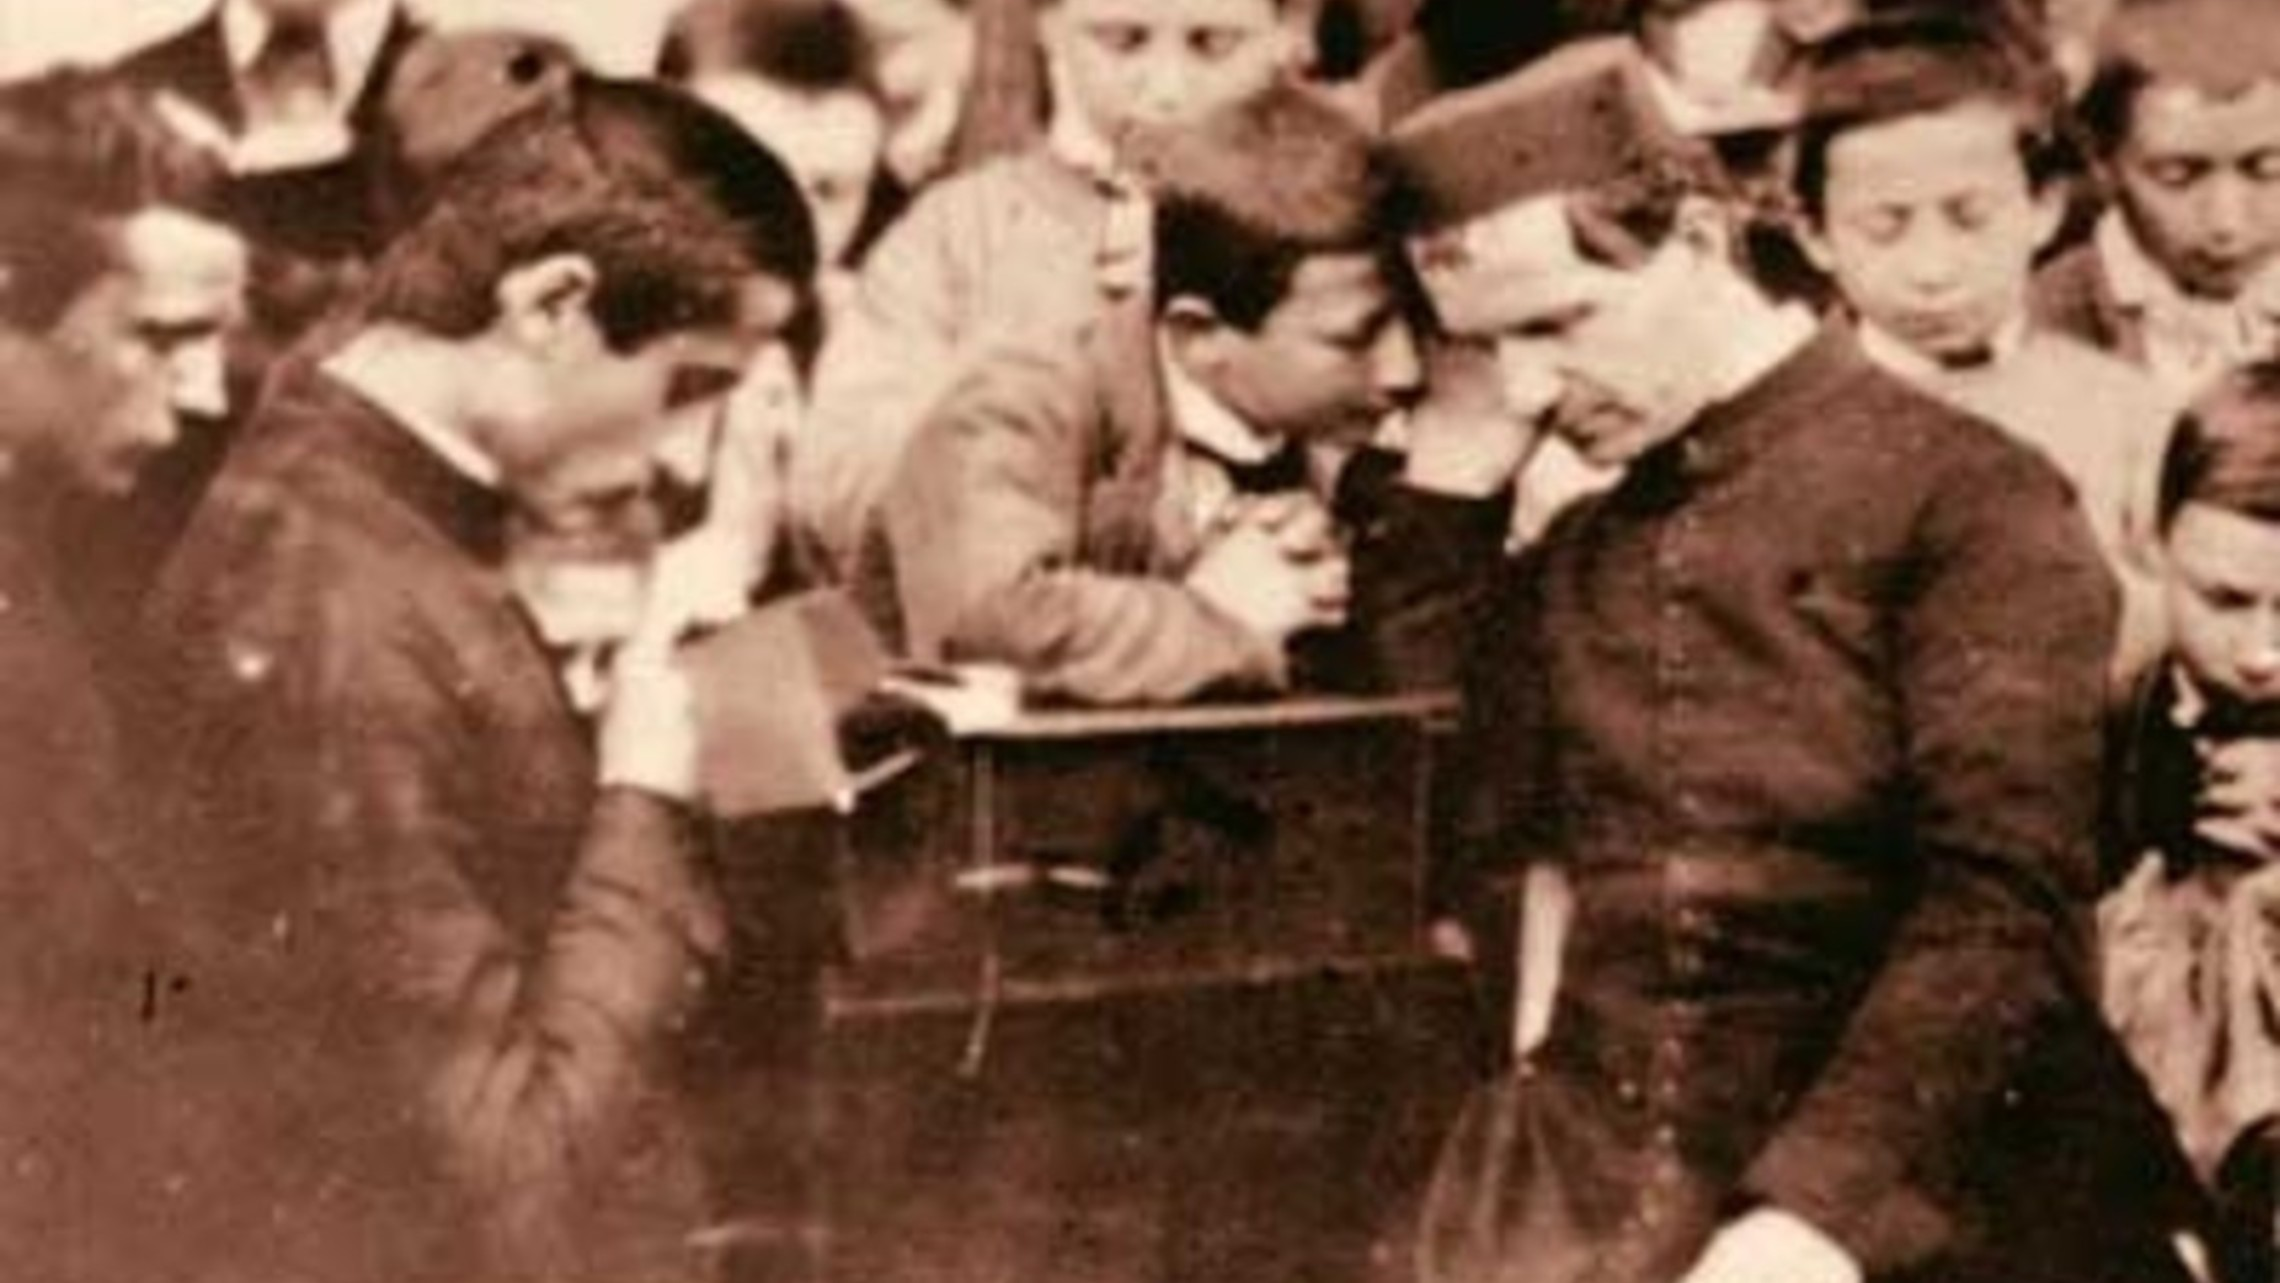 St. John Bosco Listen to a Child